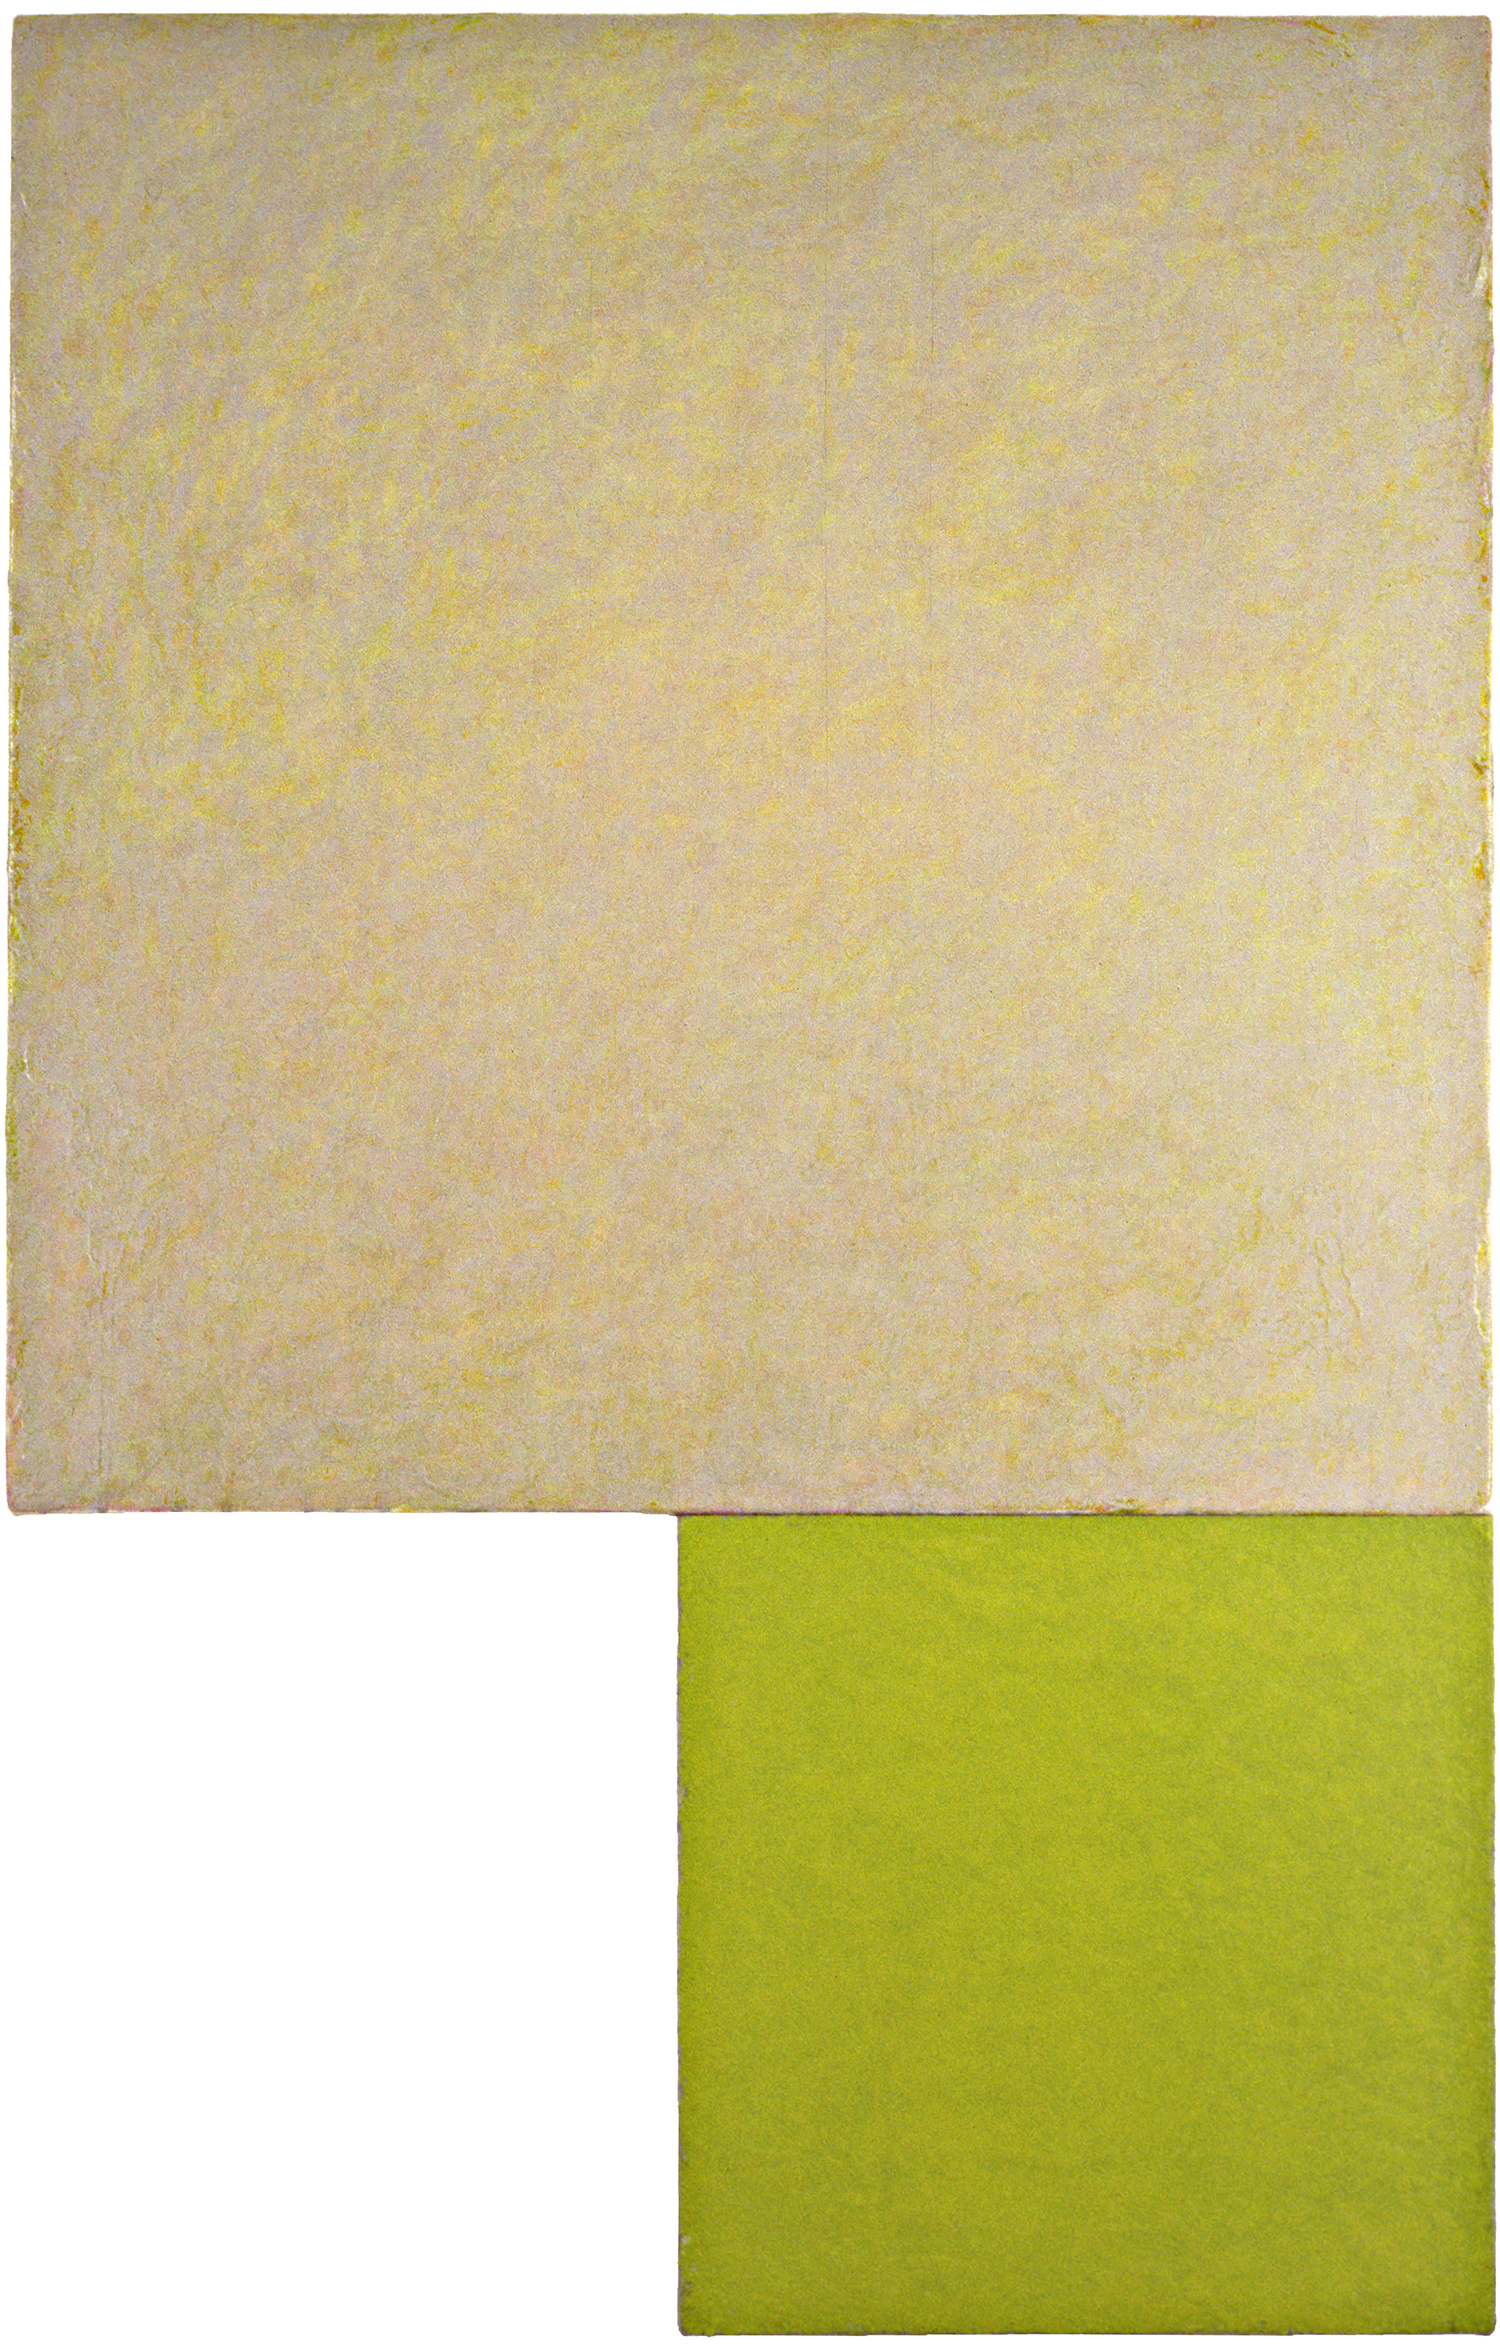 Untitled #2 (landscape), 2003